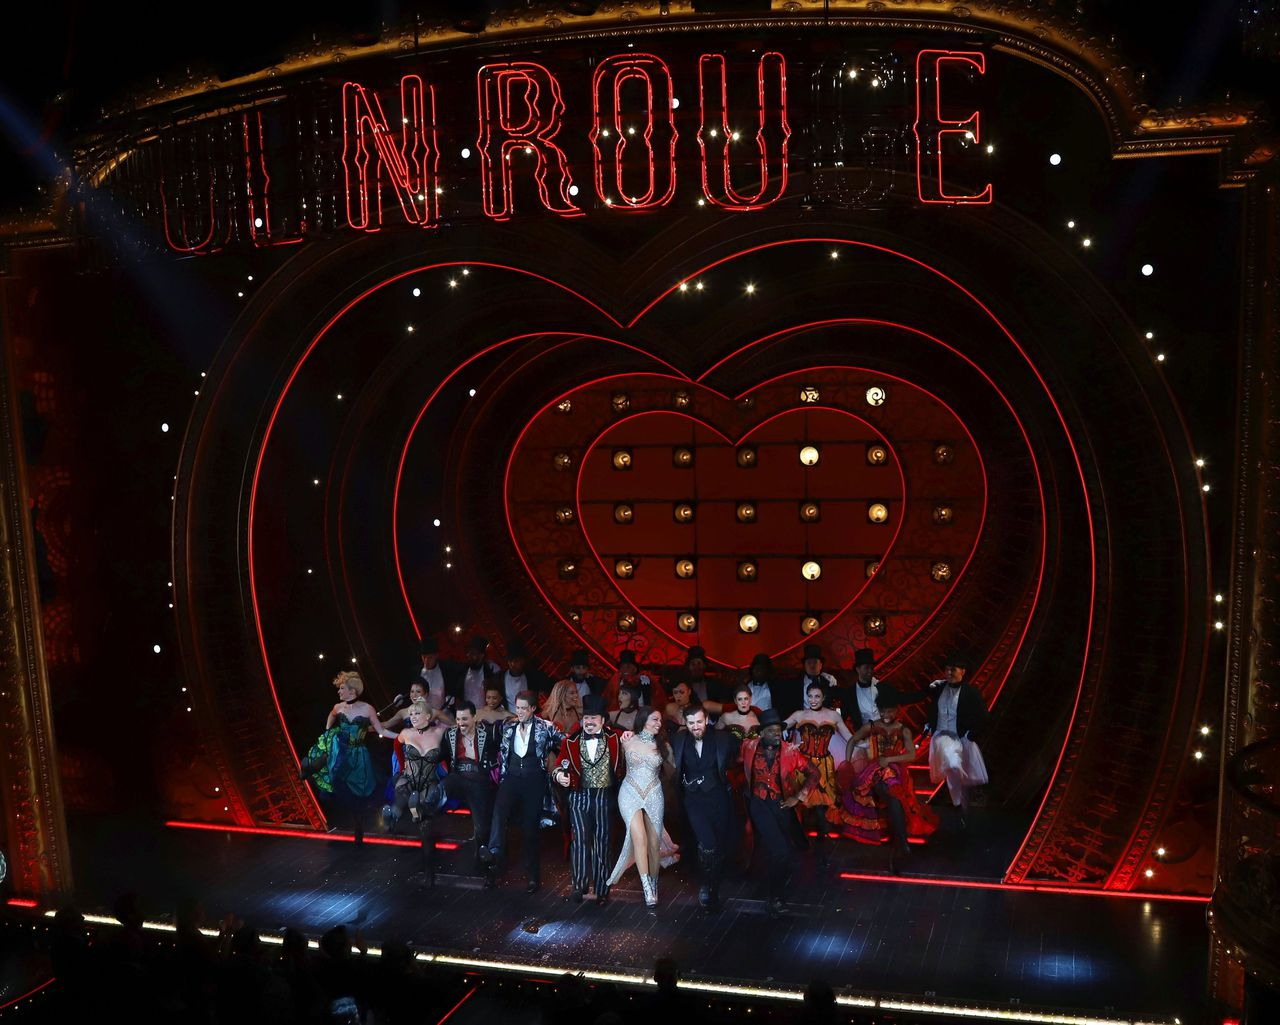 De cast van 'Moulin Rouge! The Musical' in het Al Hirschfeld Theatre in New York na de première op 25 juli.